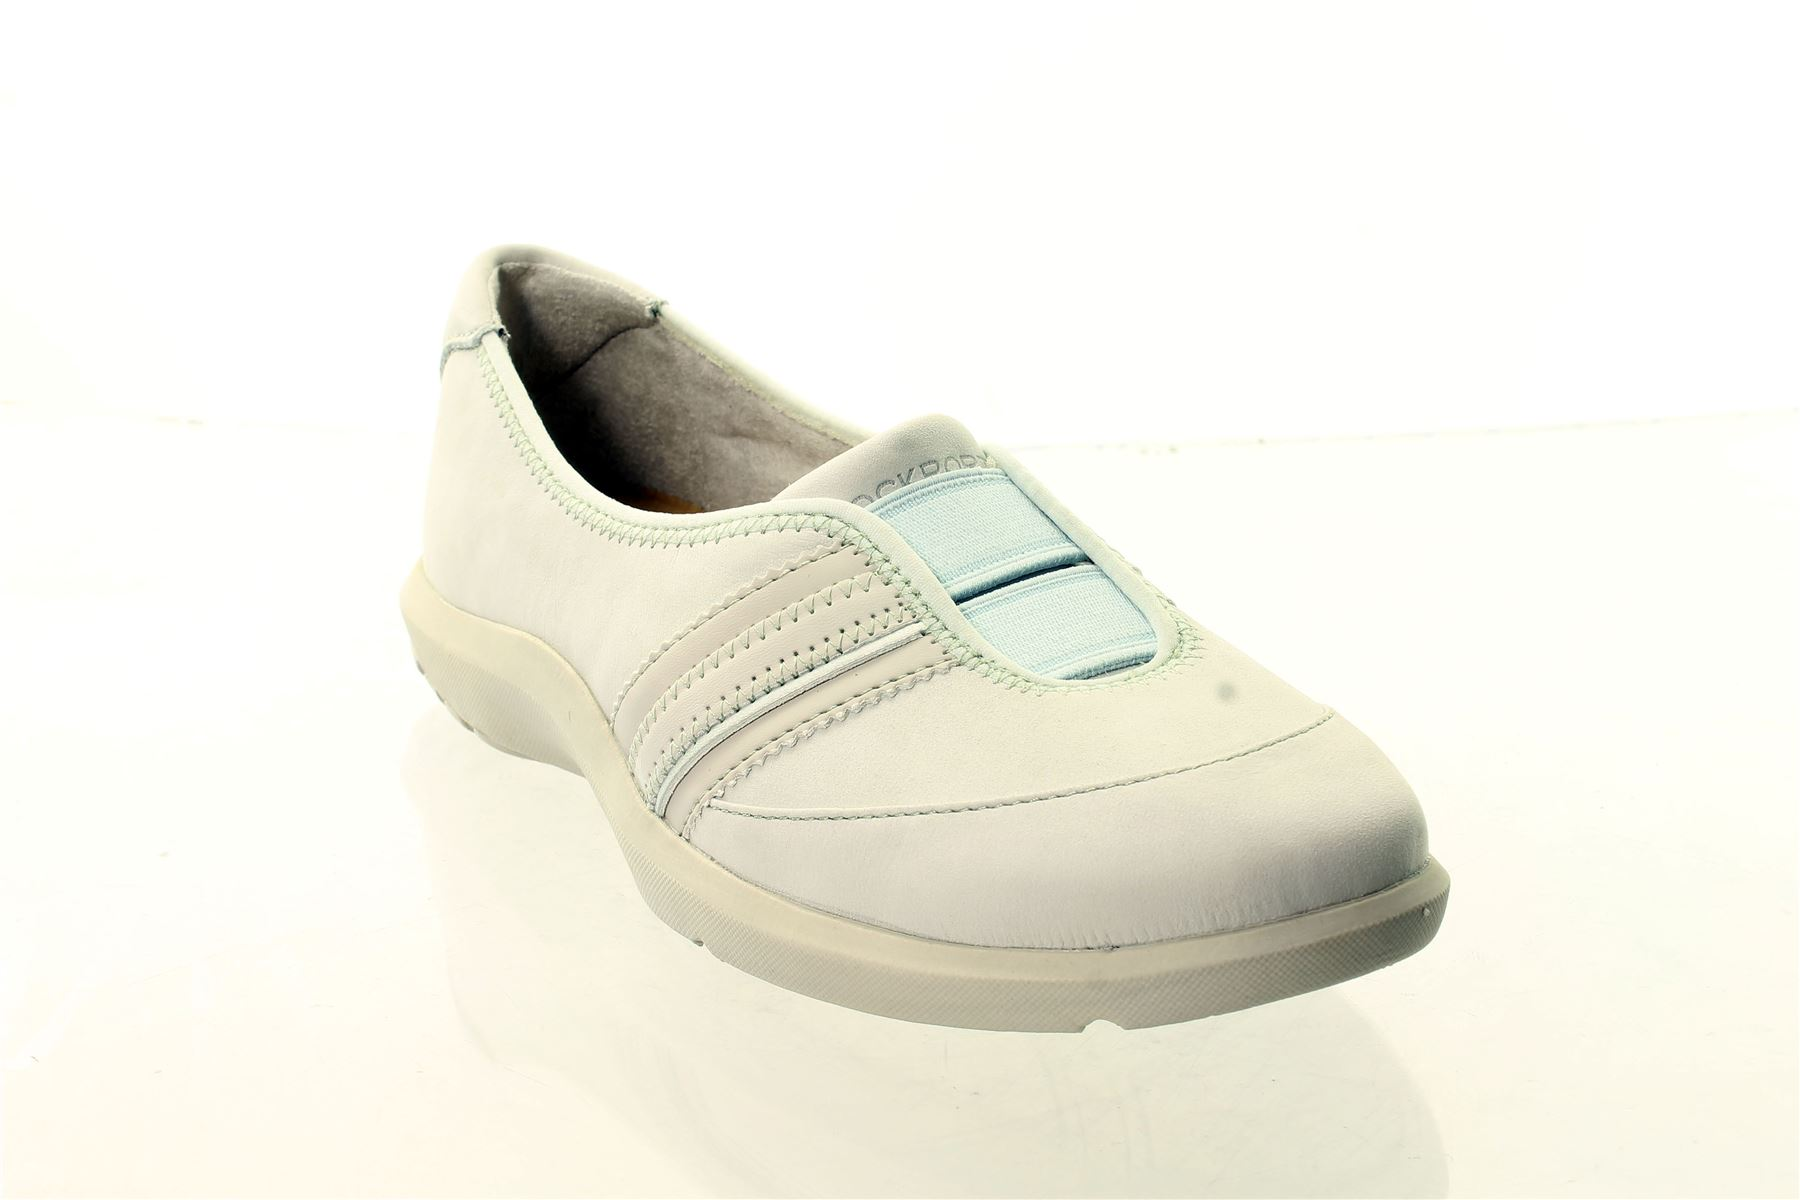 rockport womens shoes flats various styles rrp 163 35 163 50